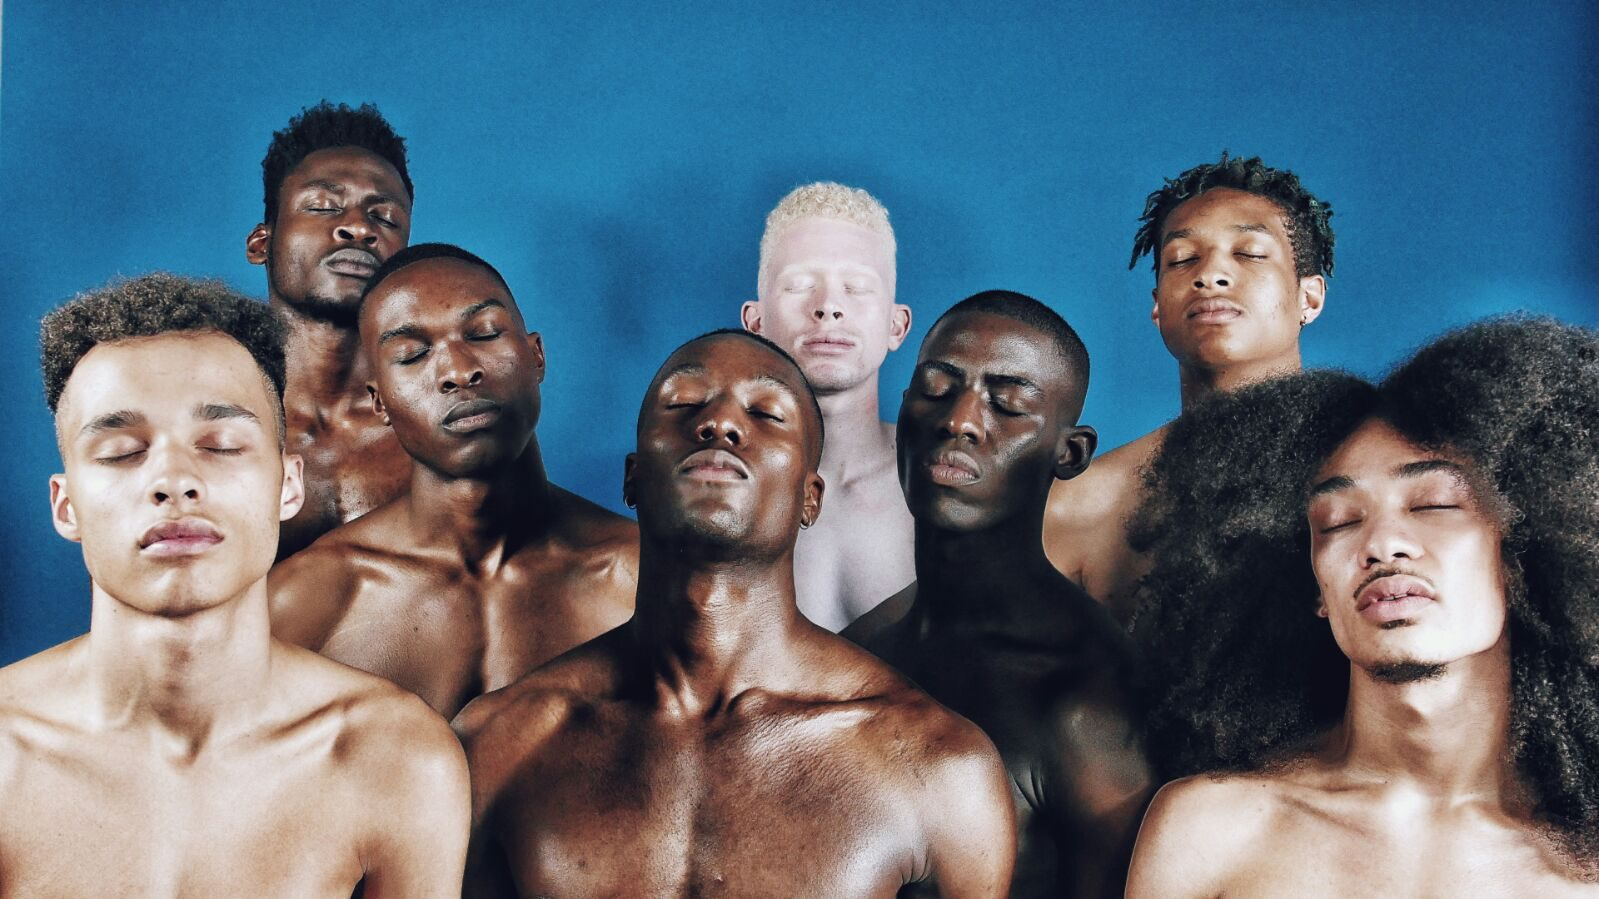 A group of men of colour